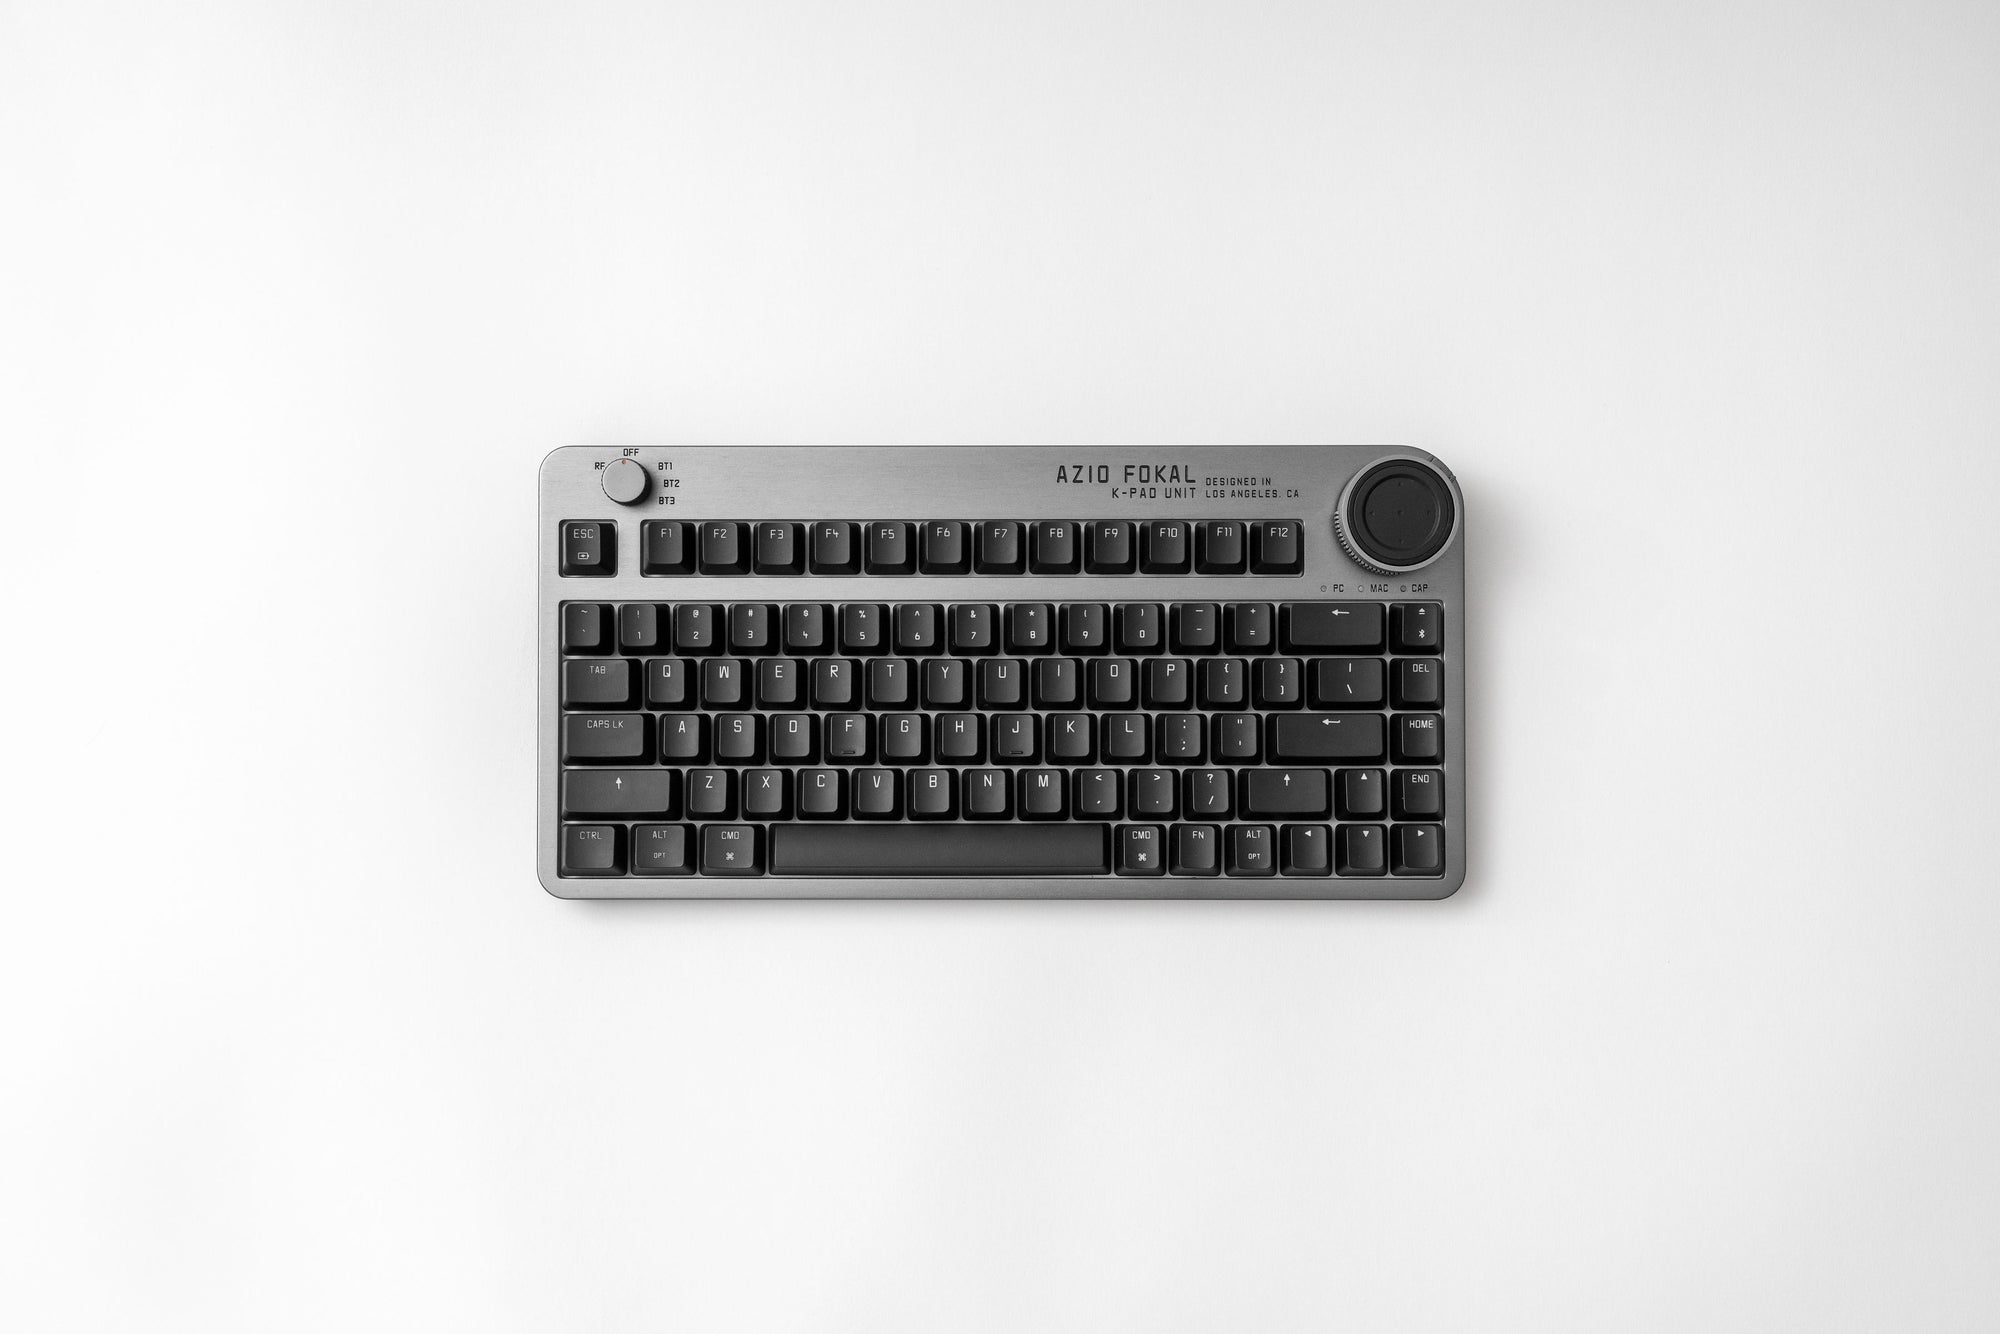 Press Release: Azio officially launches the Fokal Keyboard on Indiegogo